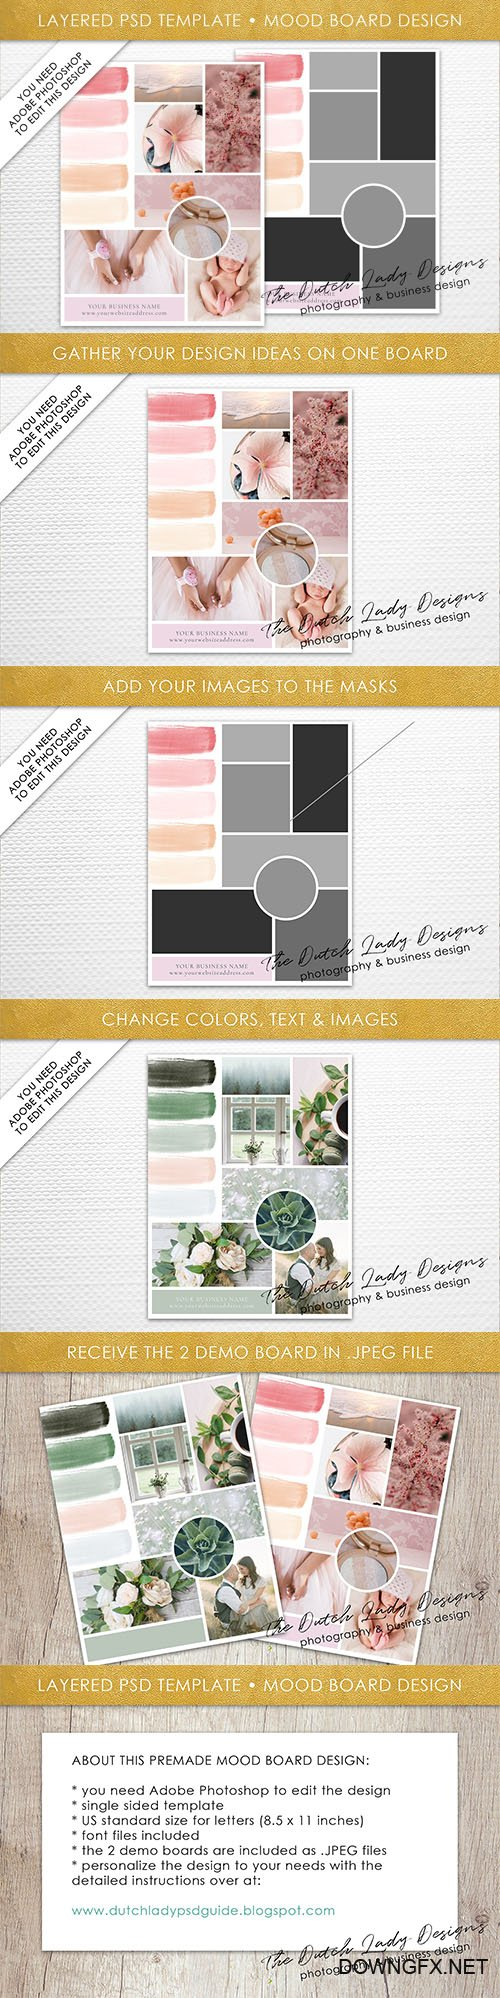 PSD Mood & Vision Board Template #3 - CM 2203730